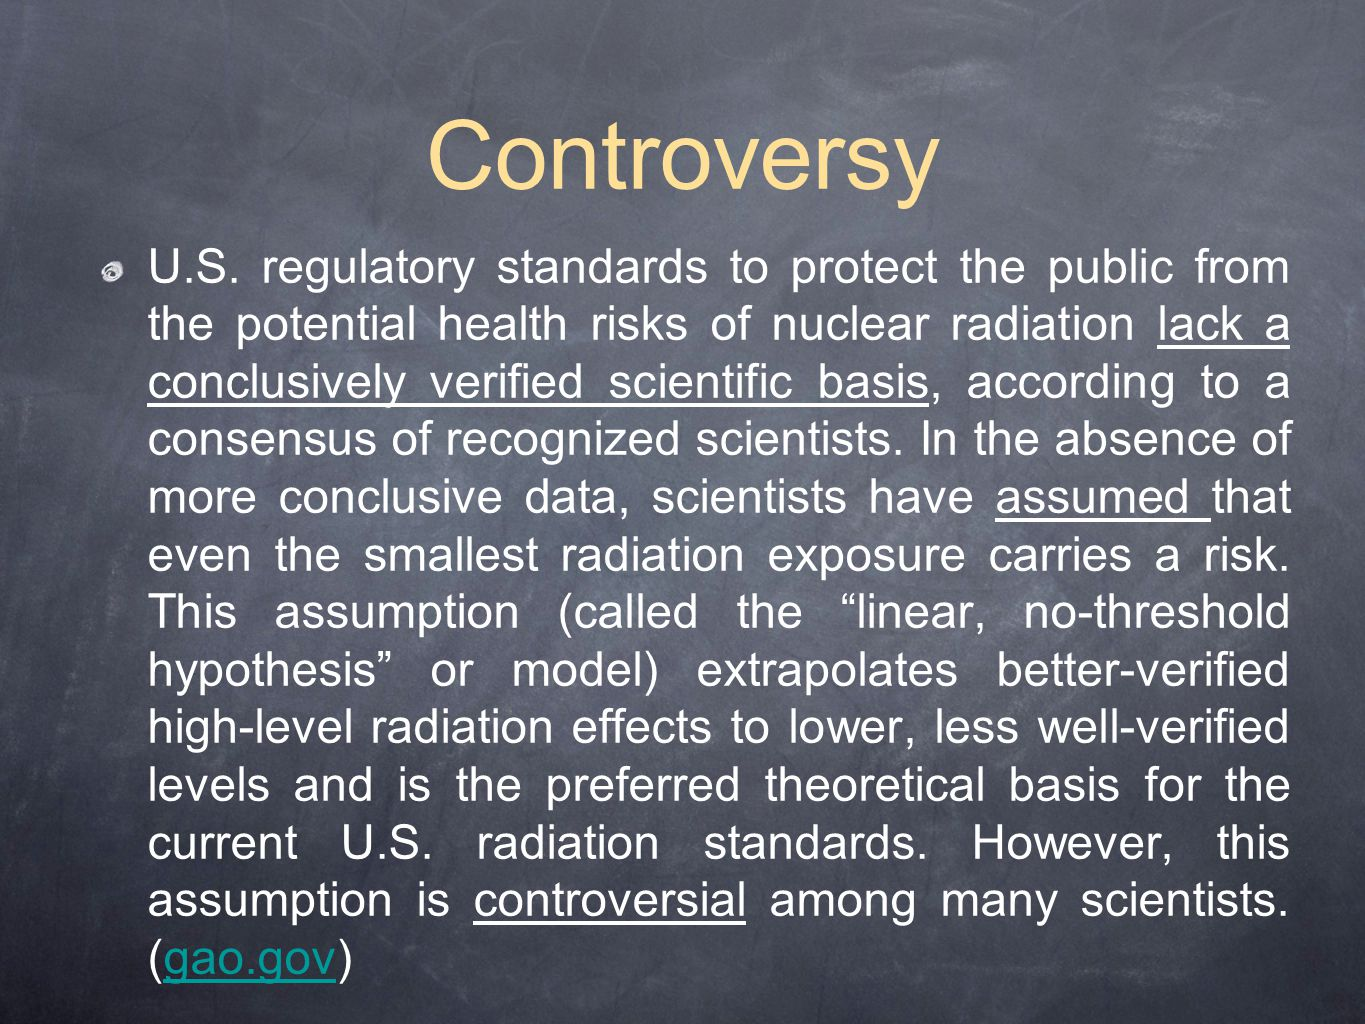 U.S. regulatory standards to protect the public from the potential health risks of nuclear radiation lack a conclusively verified scientific basis, ac